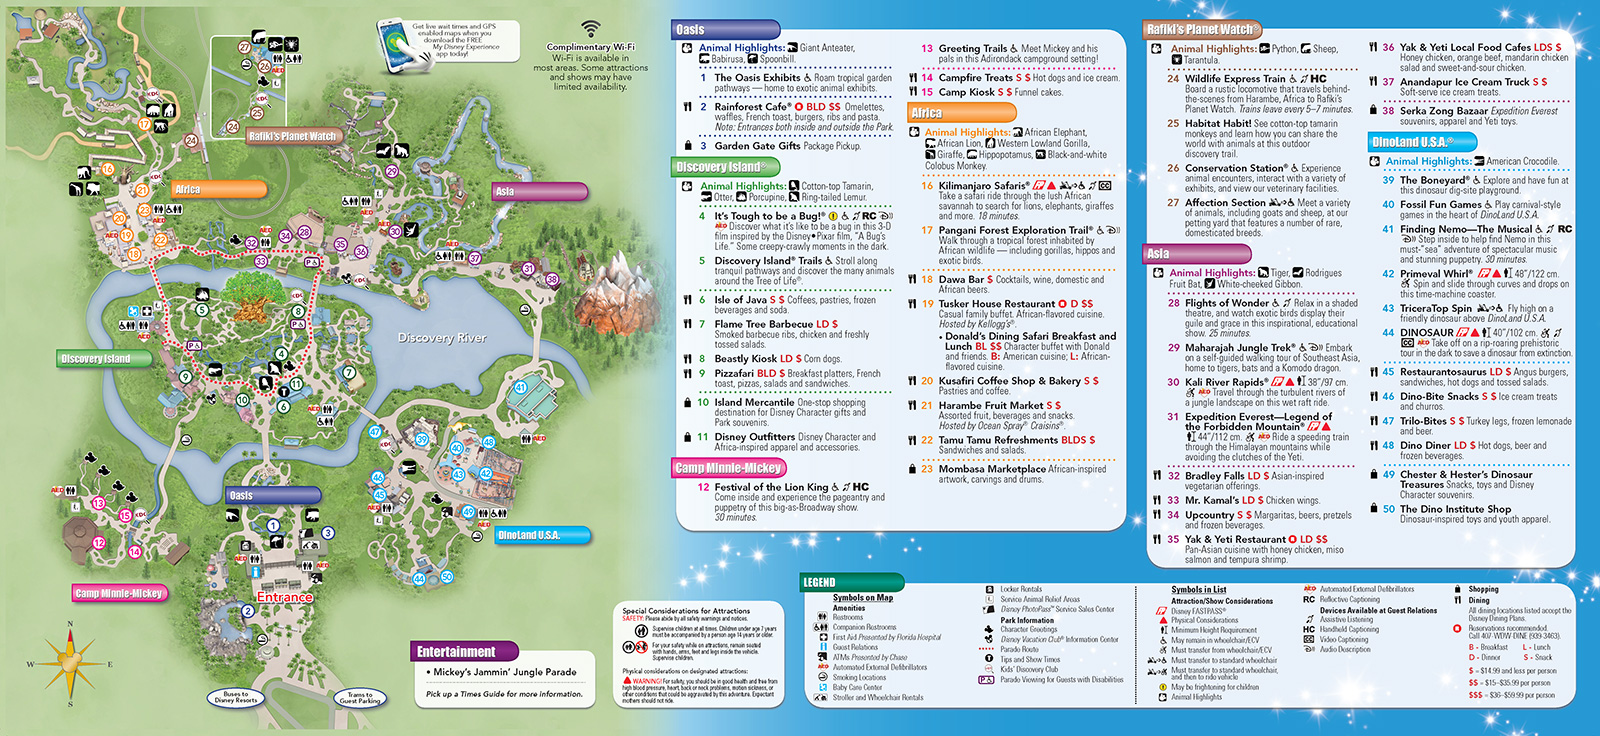 New 2013 Park Maps and Times Guides - Photo 3 of 20